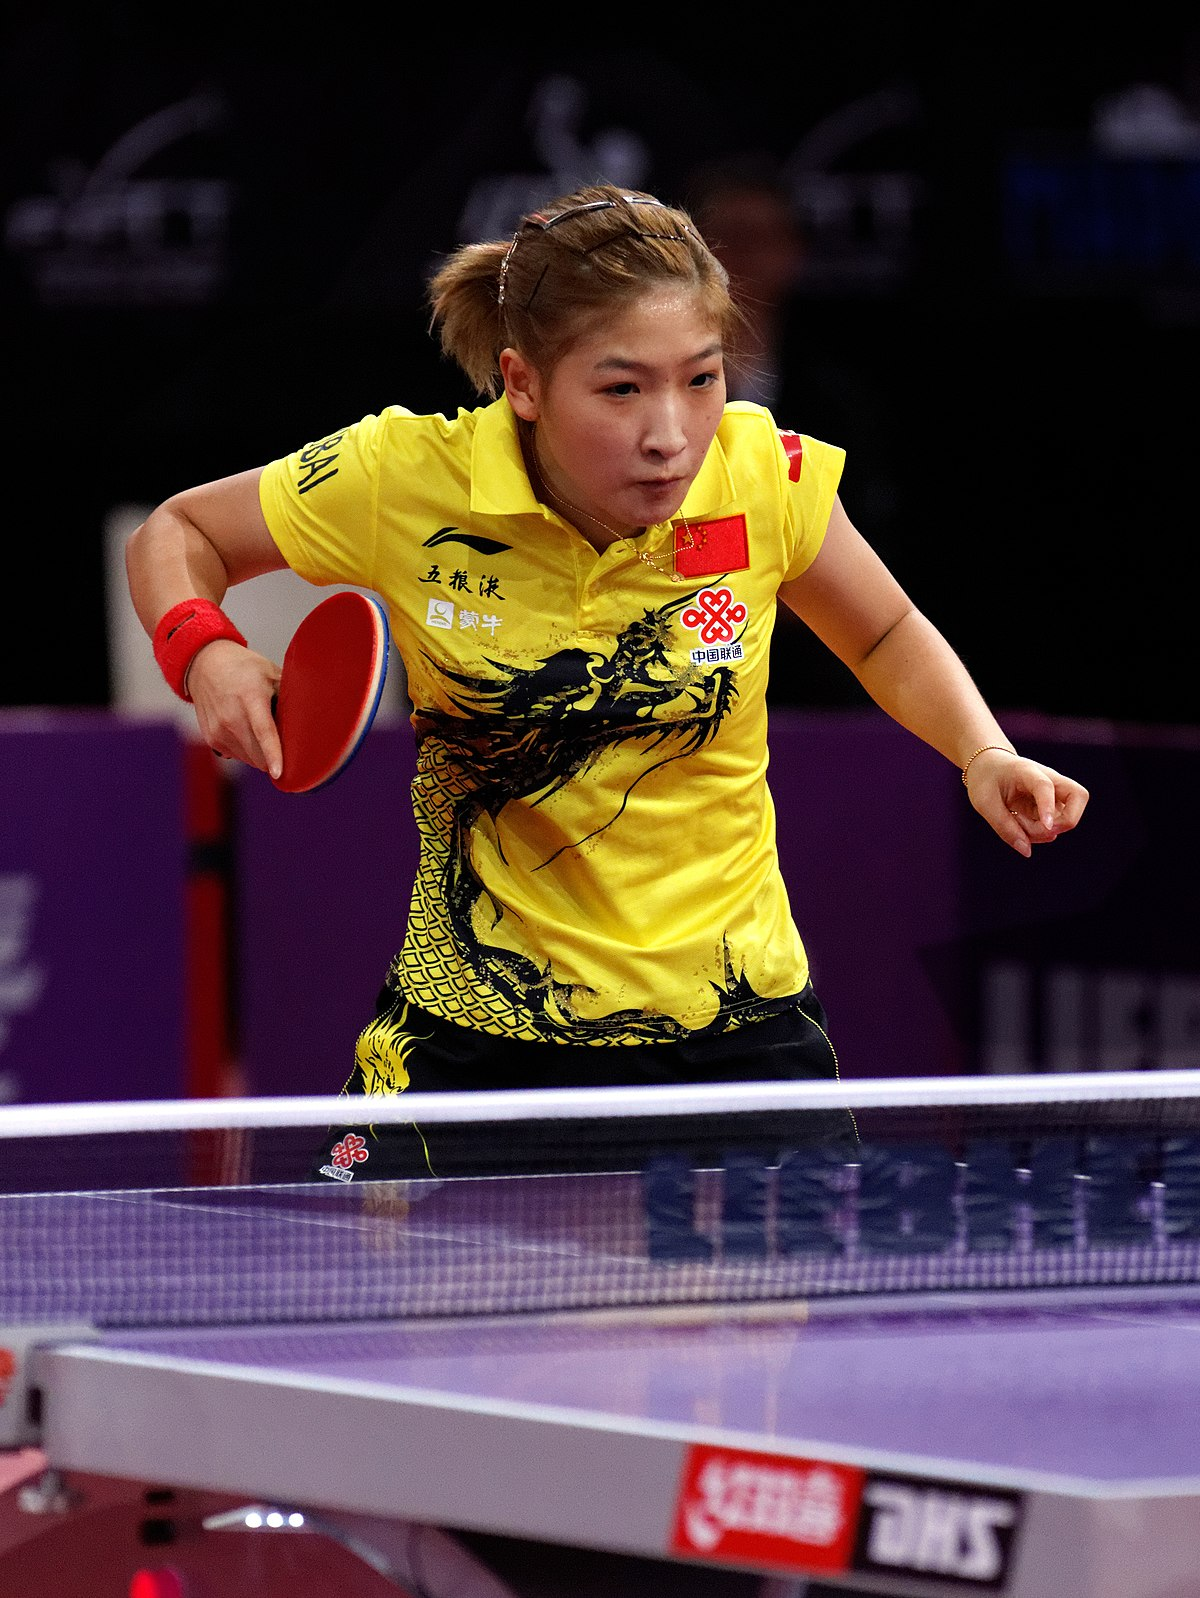 Anna Sipos 11x world table tennis champion, Hall of Fame